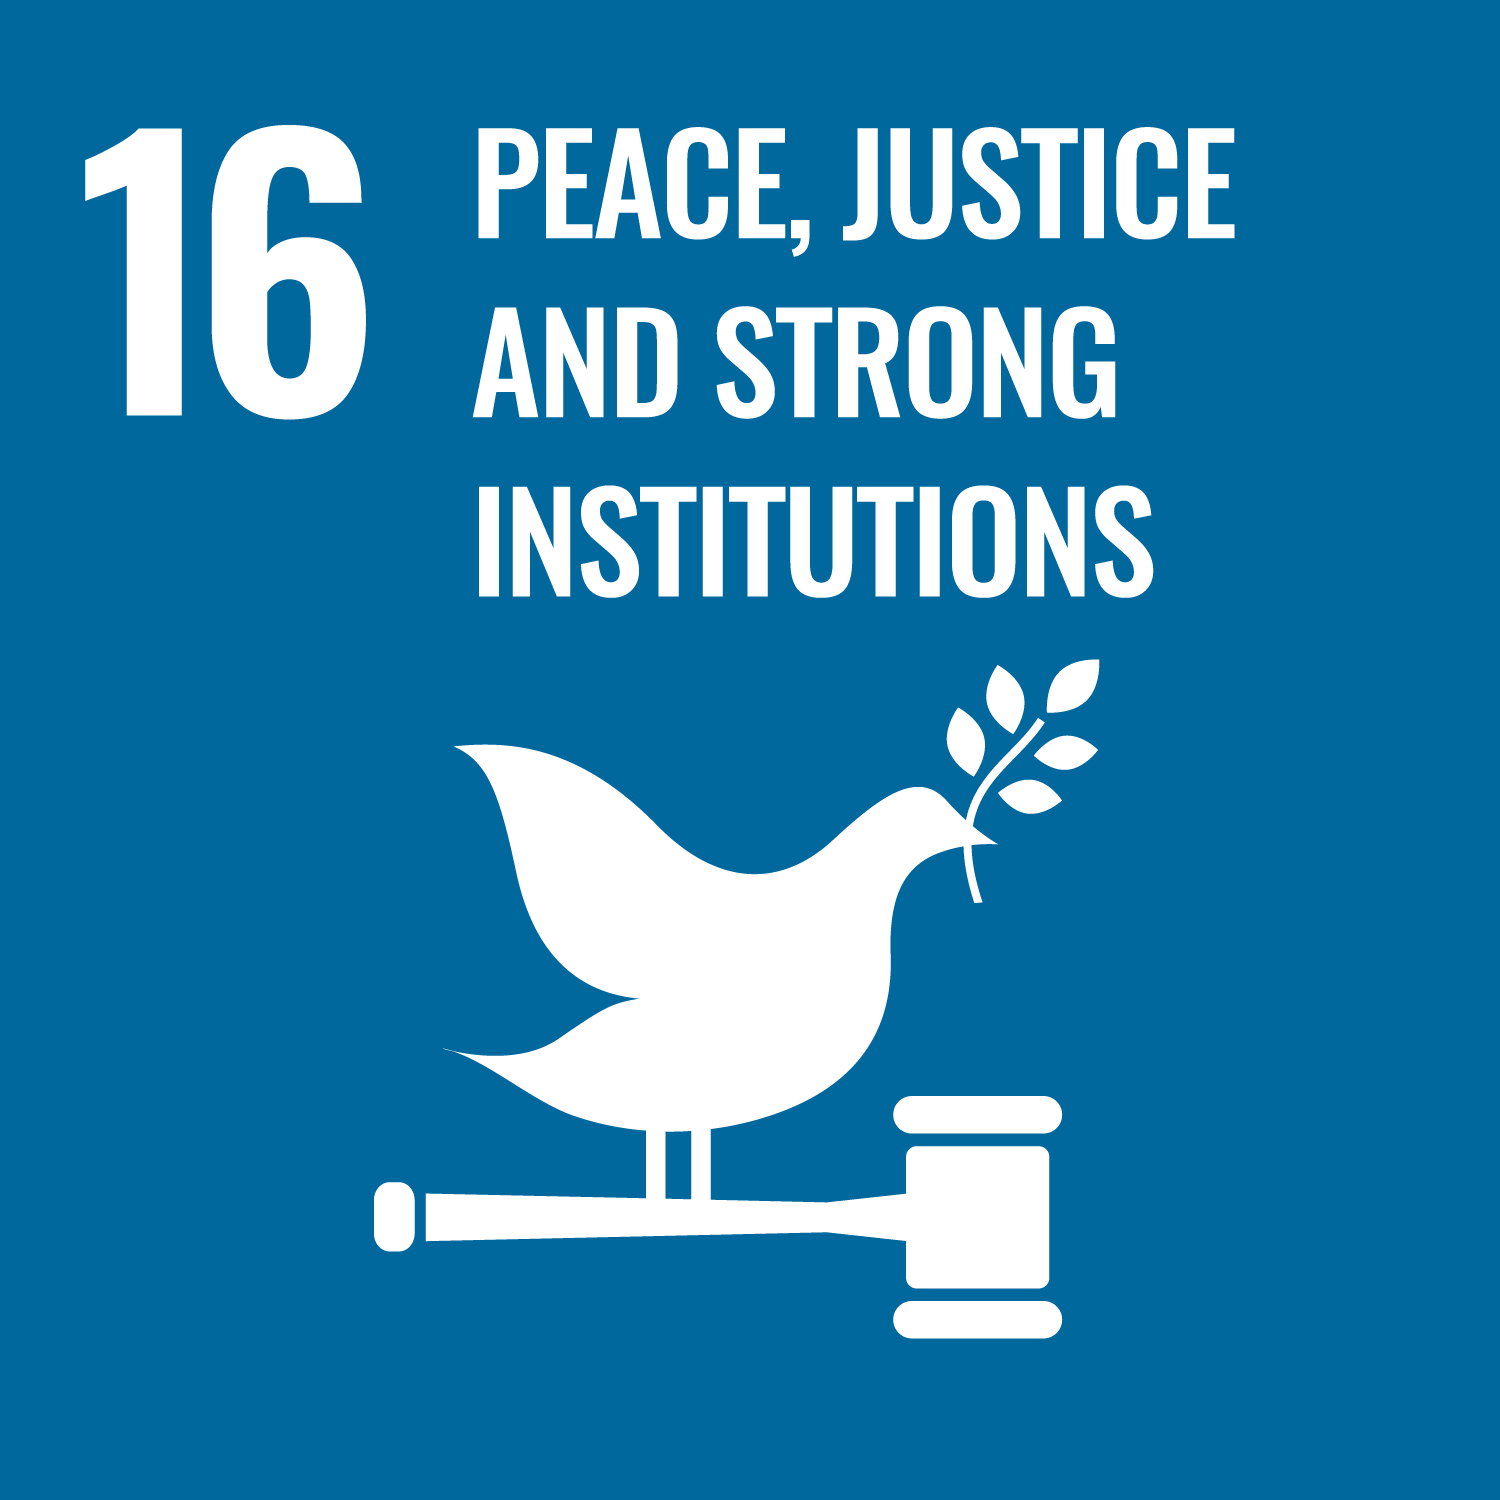 Sustainable Development Goal 16. Promote just, peaceful and inclusive societies.